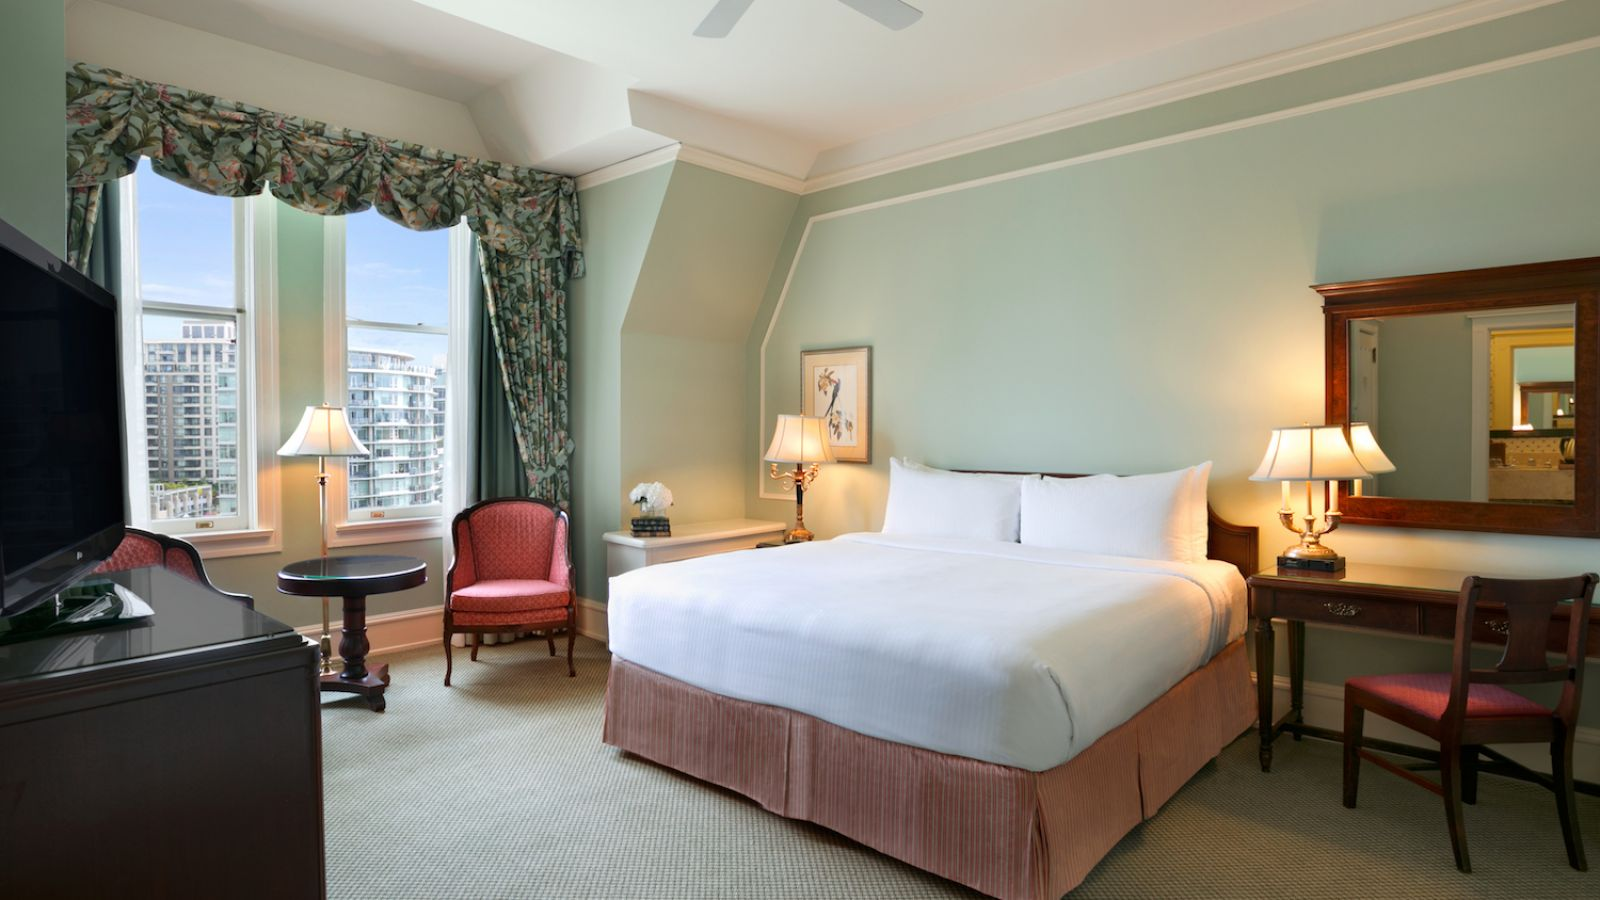 The Fairmont Empress - Vancouver Island golf packages